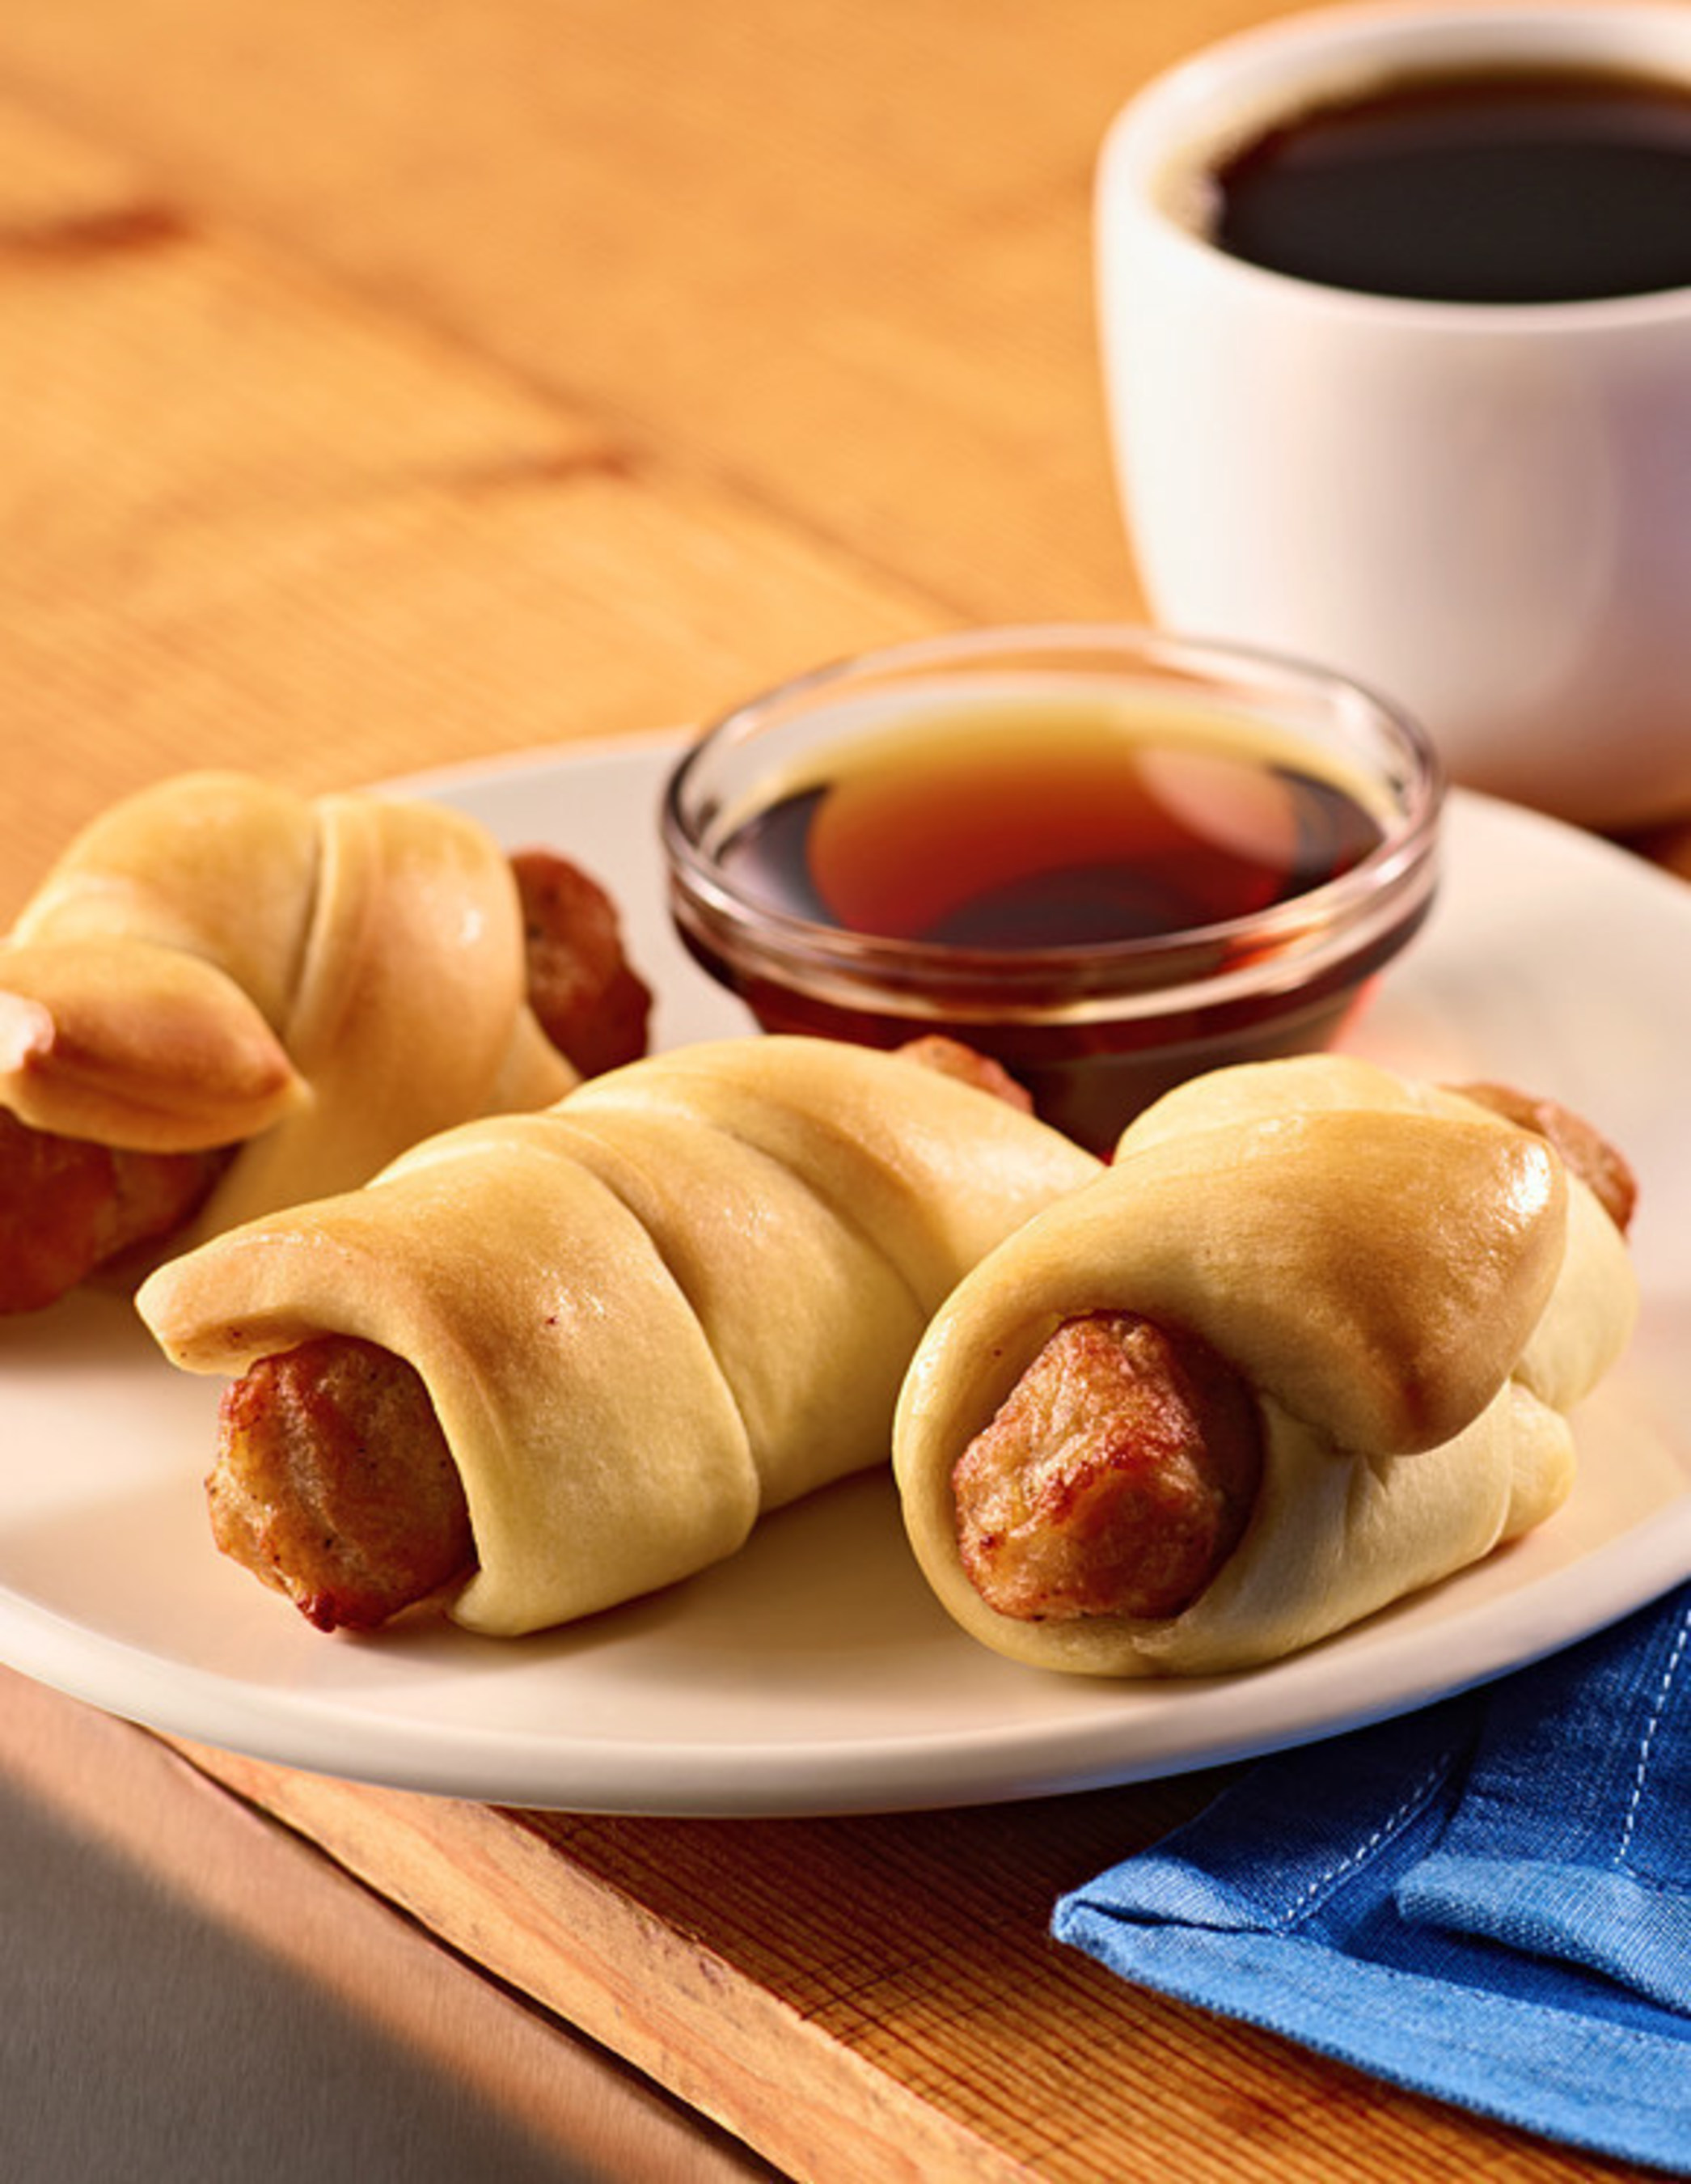 Cinnabon Sausage Bites are now available at select locations nationwide